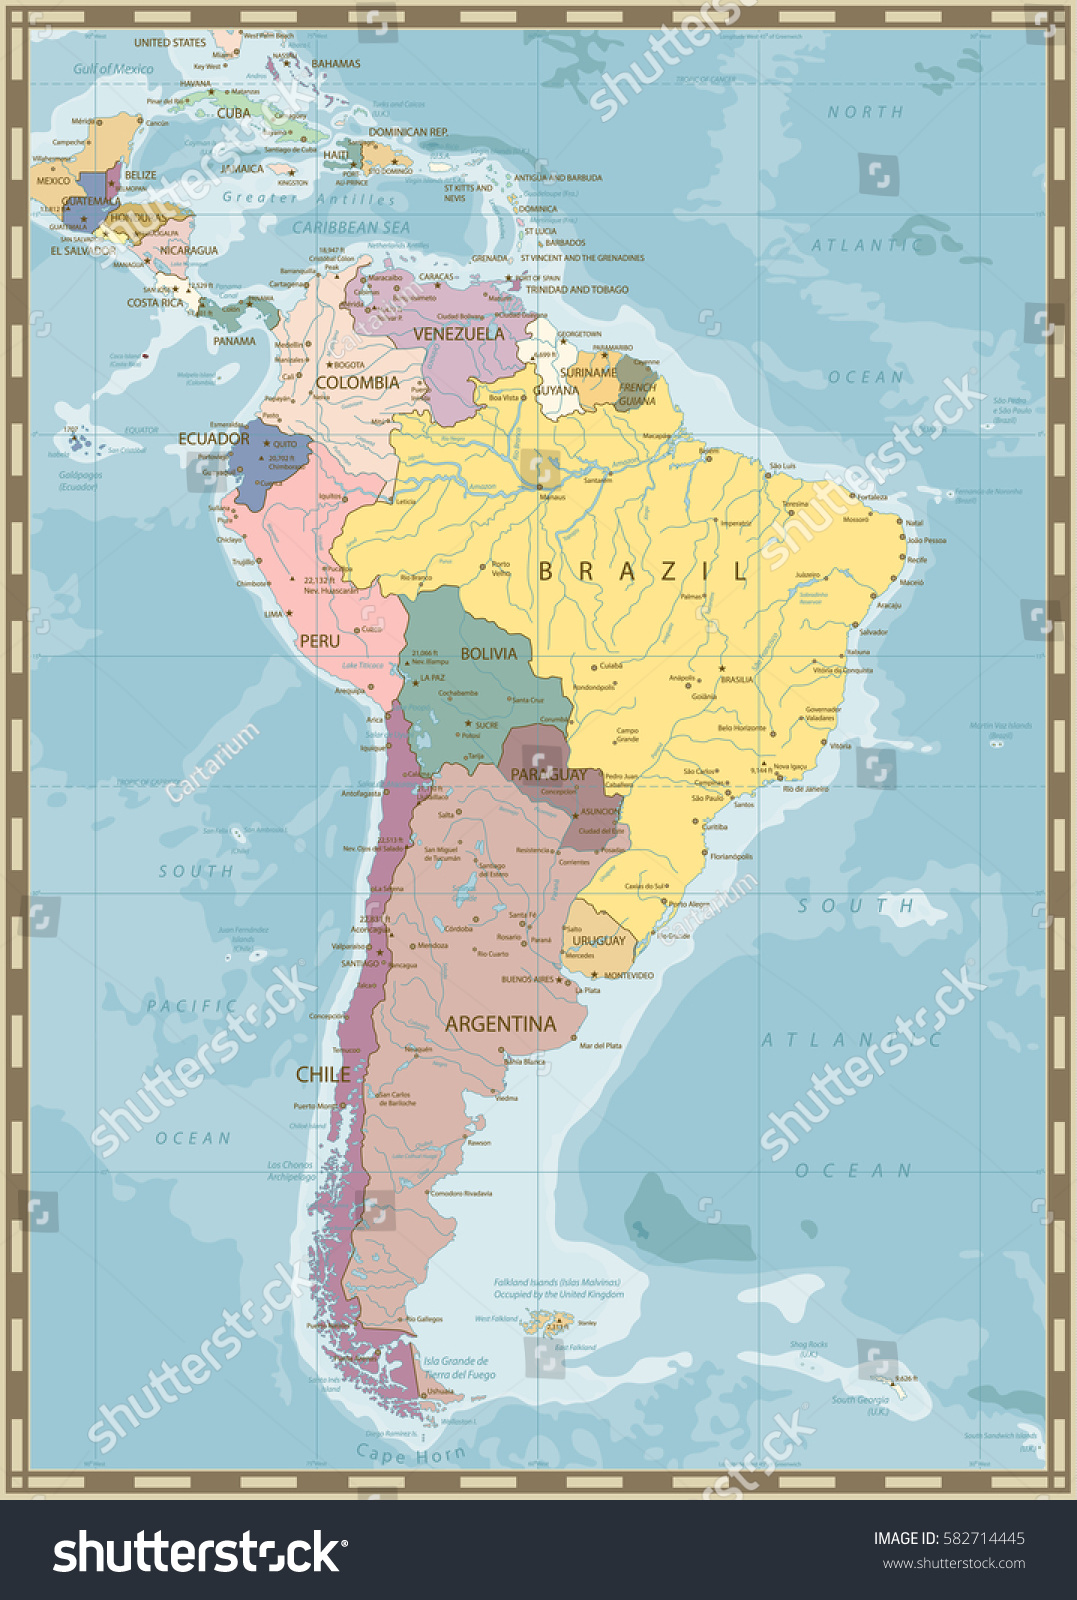 South America Political Map Lakes Rivers Vintage Stock Vector